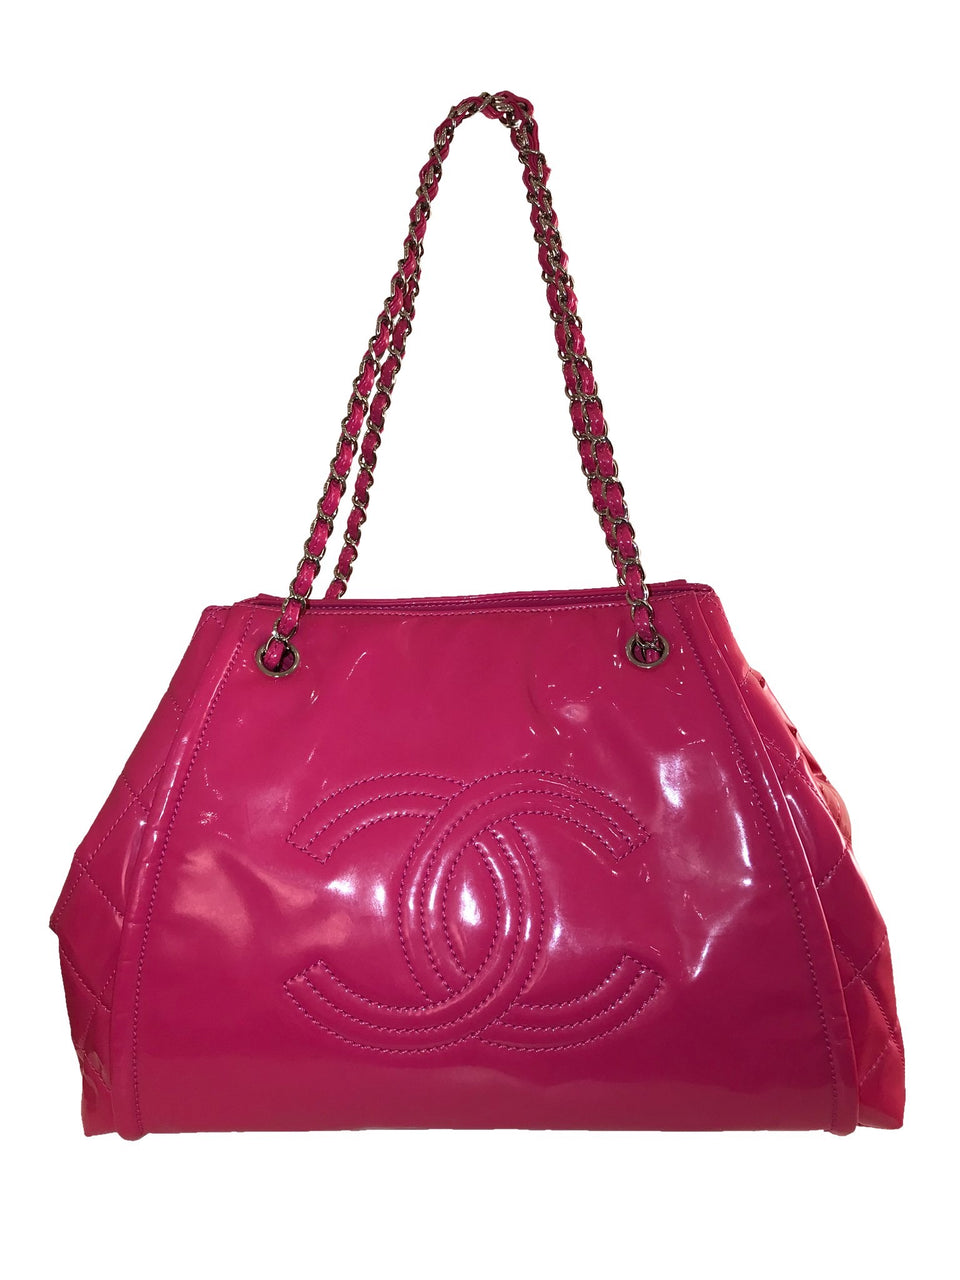 Pink Patent Leather CC Bag